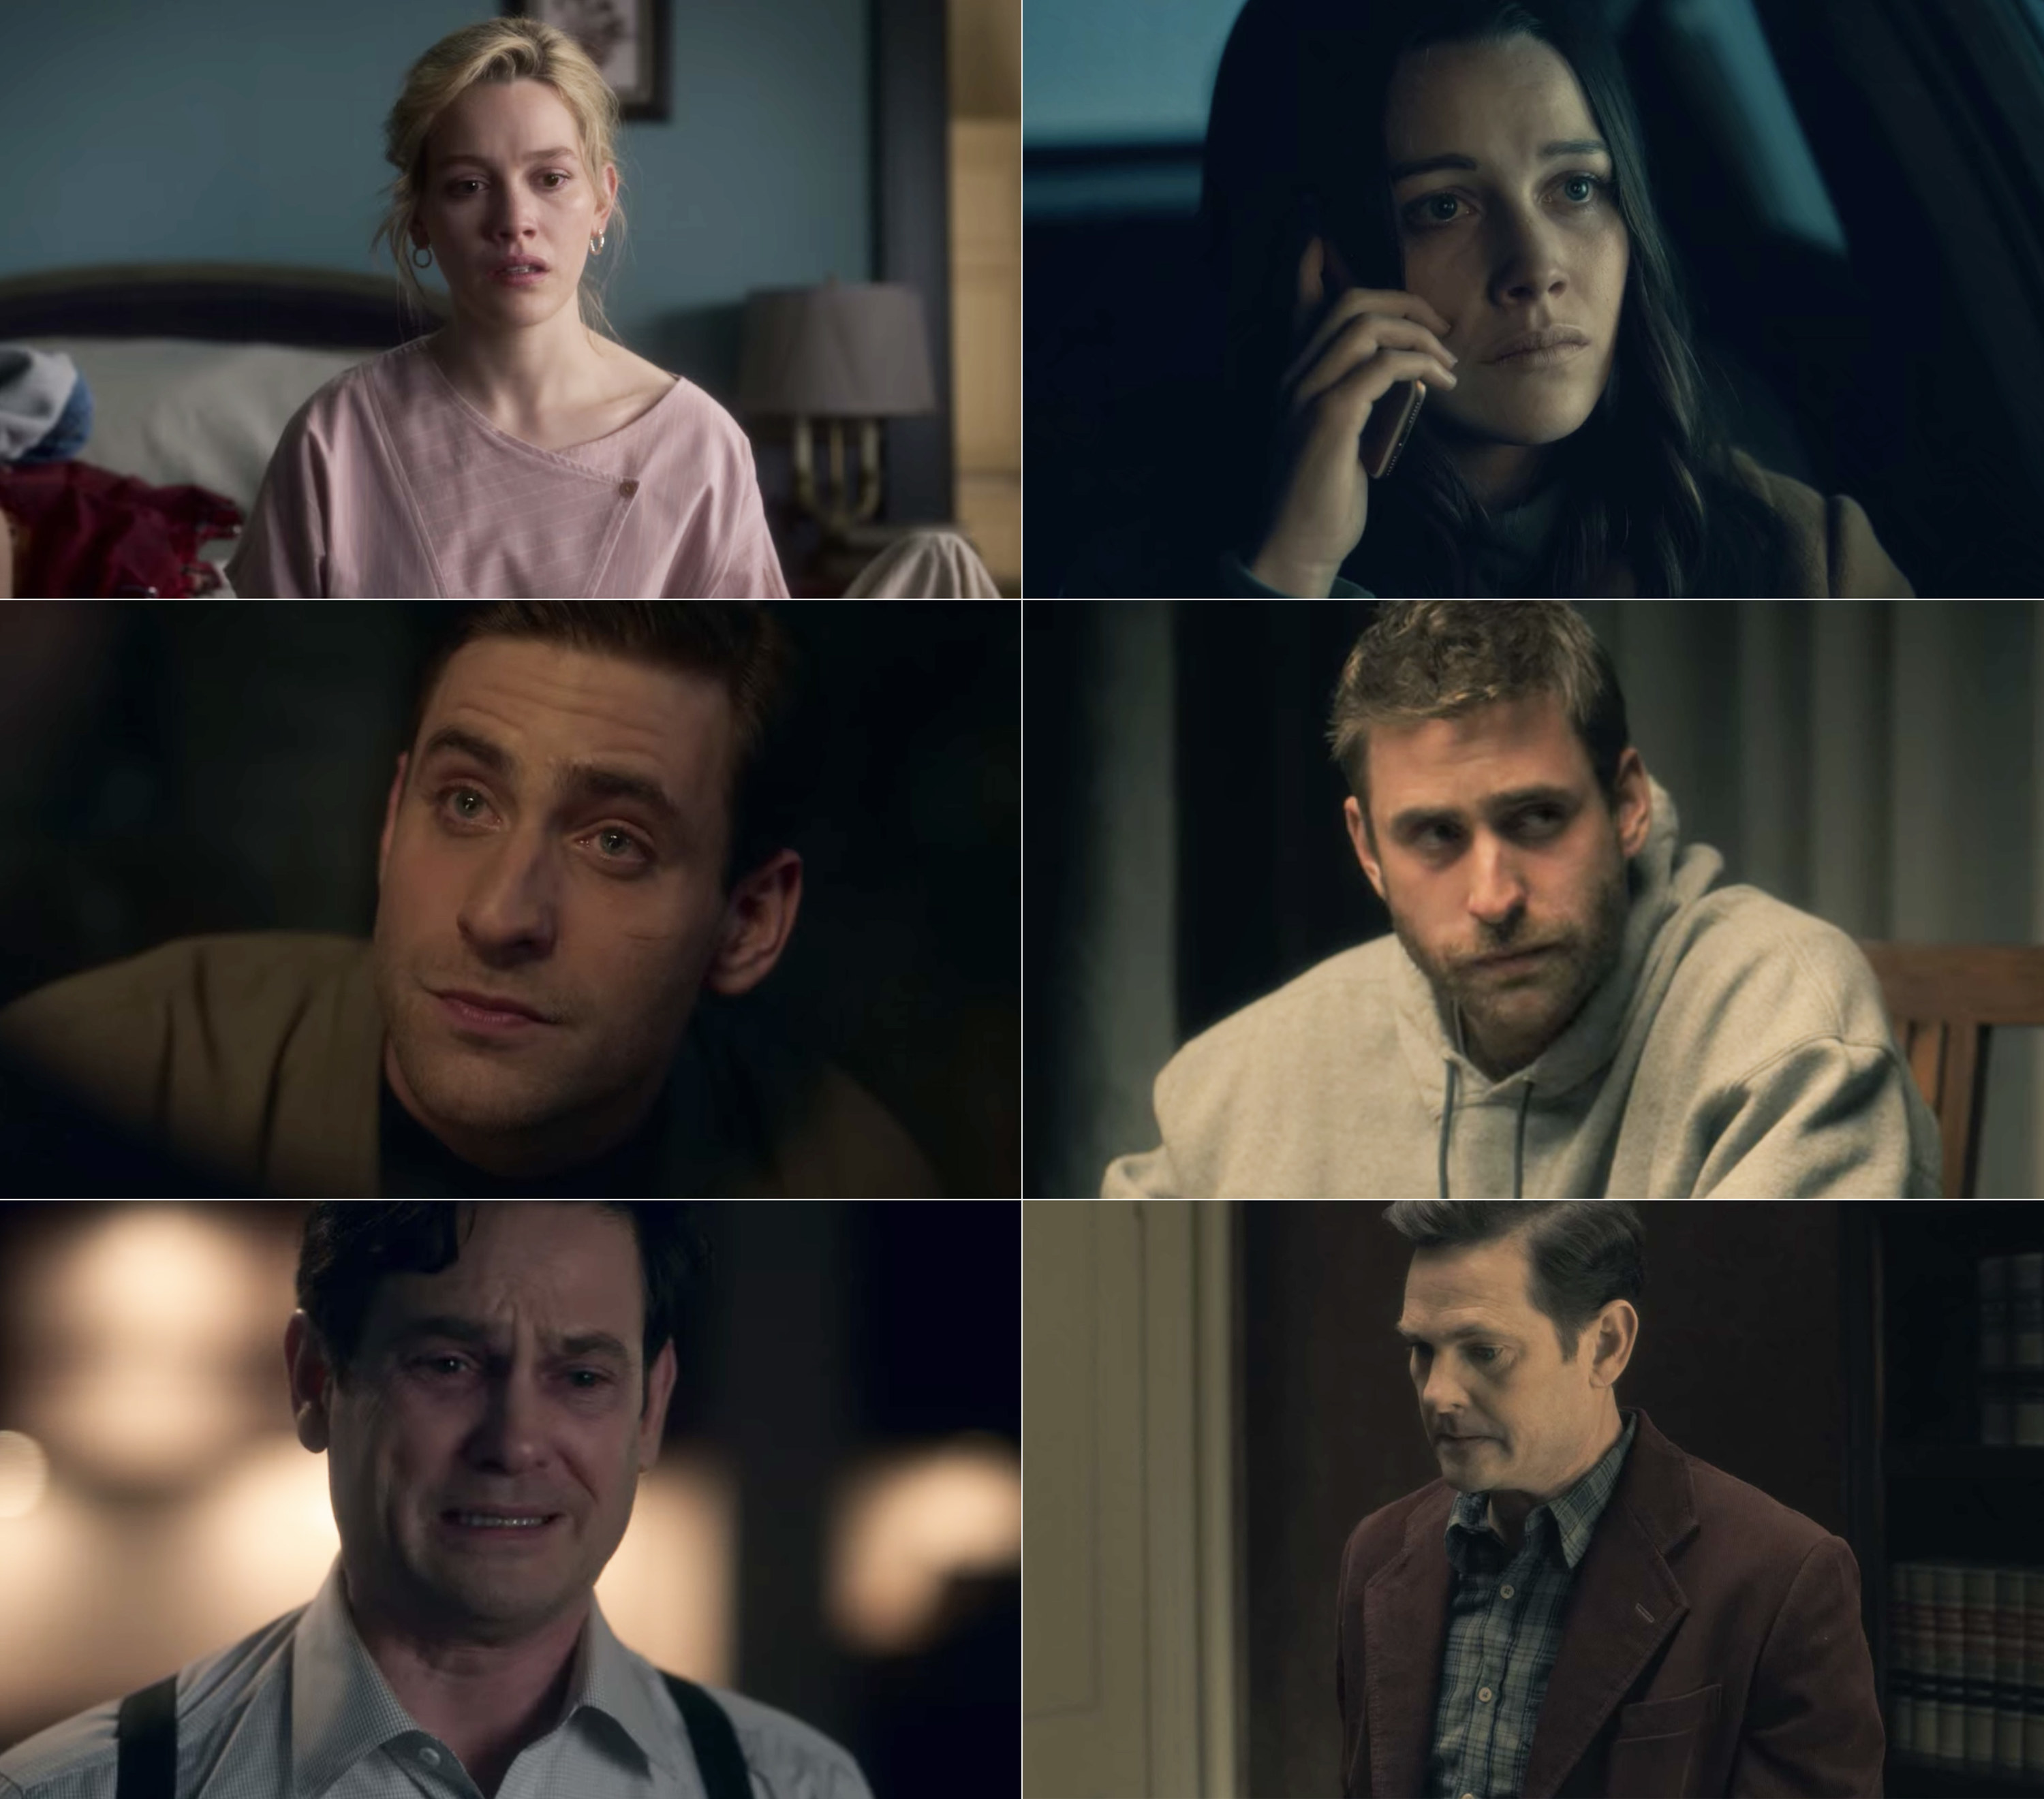 Victoria Pedretti, Oliver Jackson-Cohen, and Henry Thomas in Bly Manor vs. Hill House